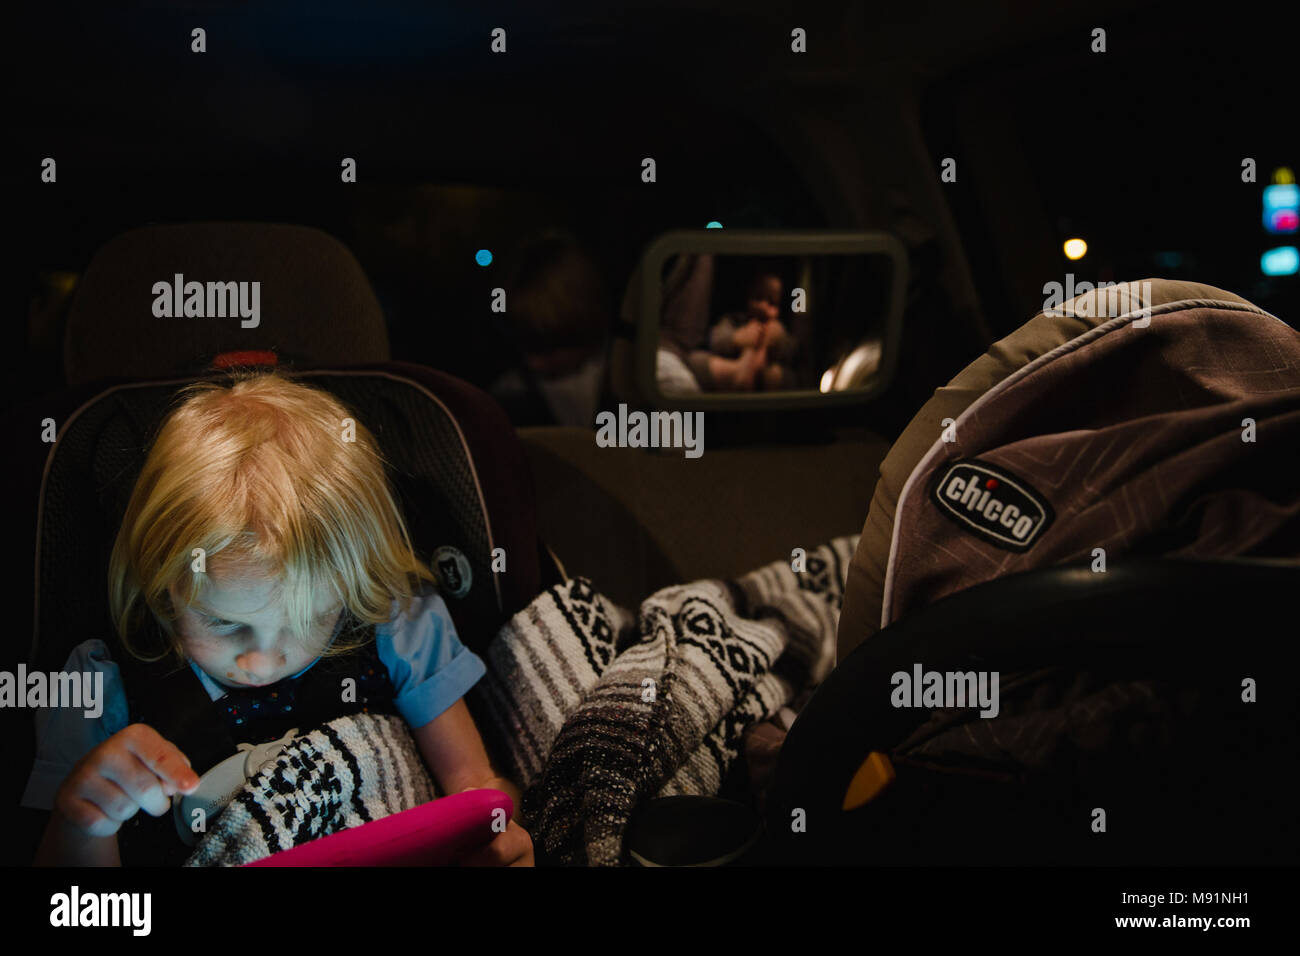 girl plays on ipad tablet in backseat while baby sleeps in carseat night time - Stock Image